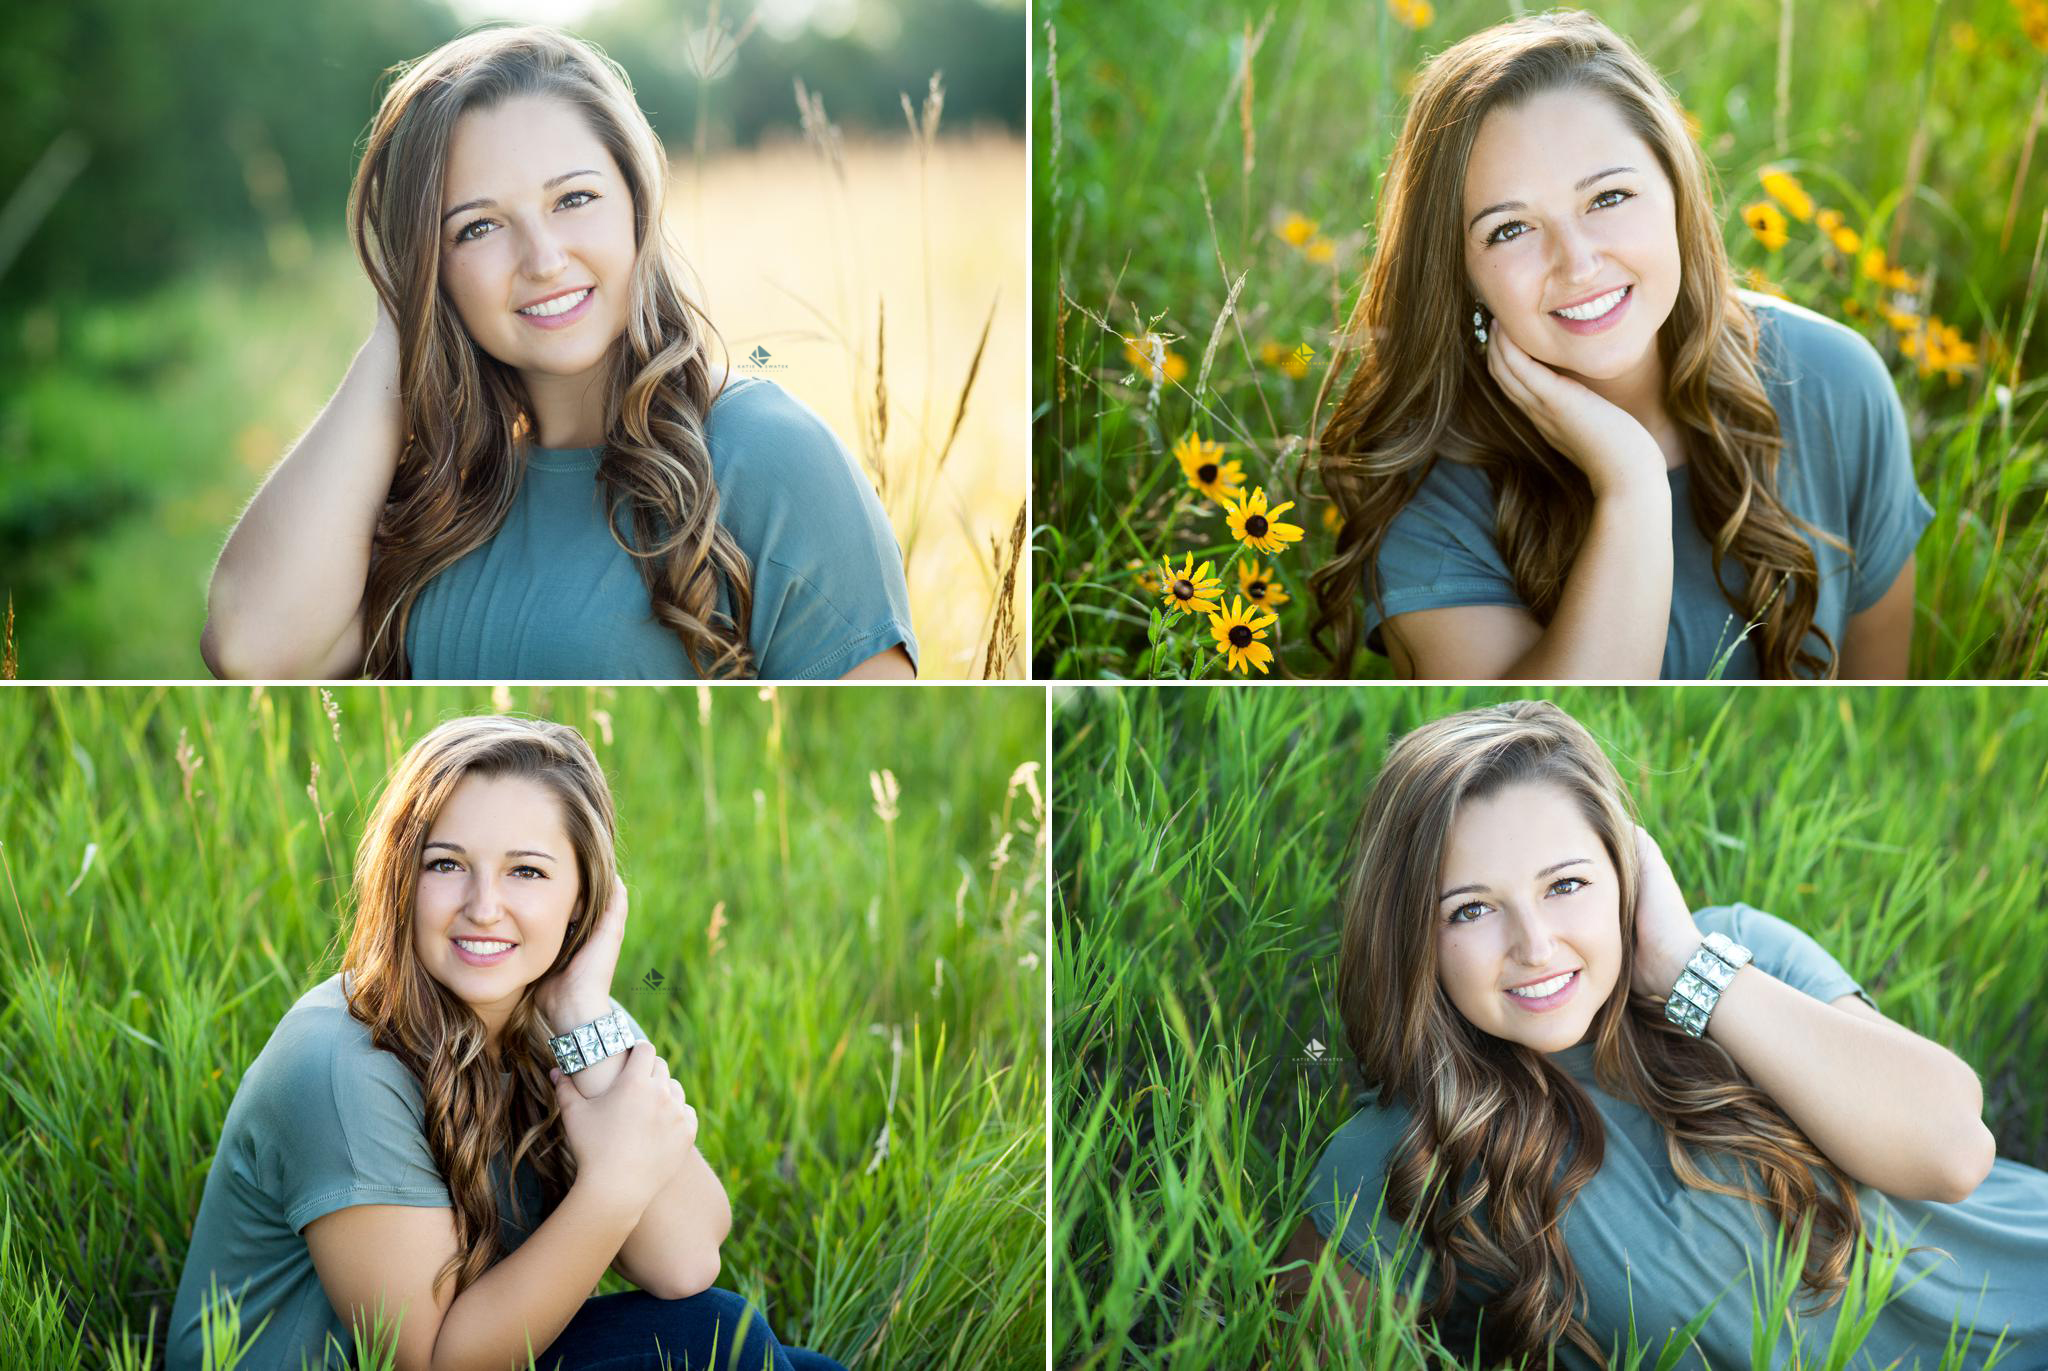 brunette senior girl in a green top sitting in a field of yellow wildflowers